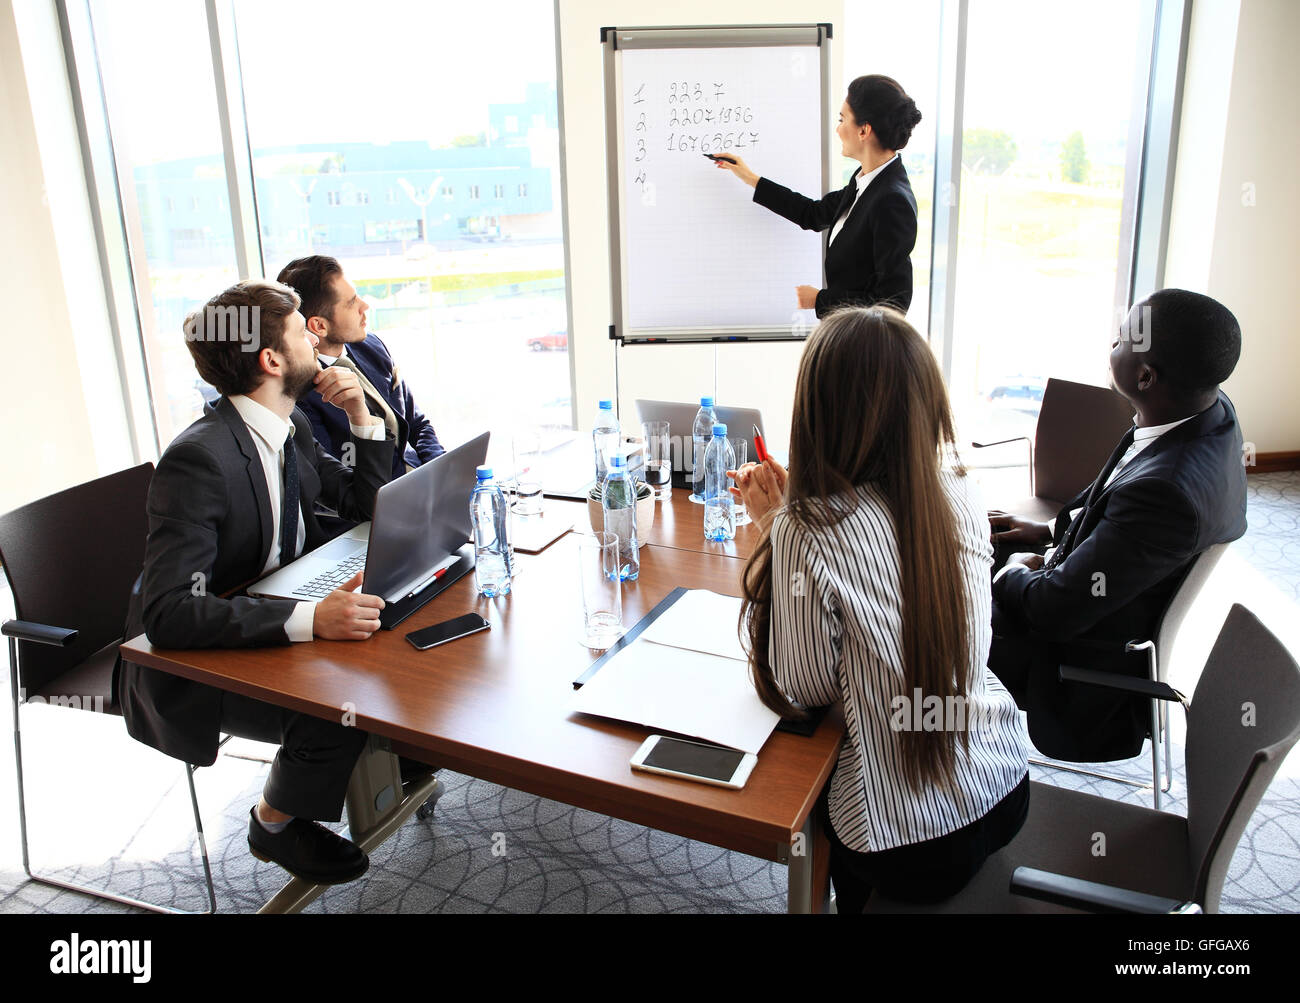 Woman making business presentation to a group - Stock Image